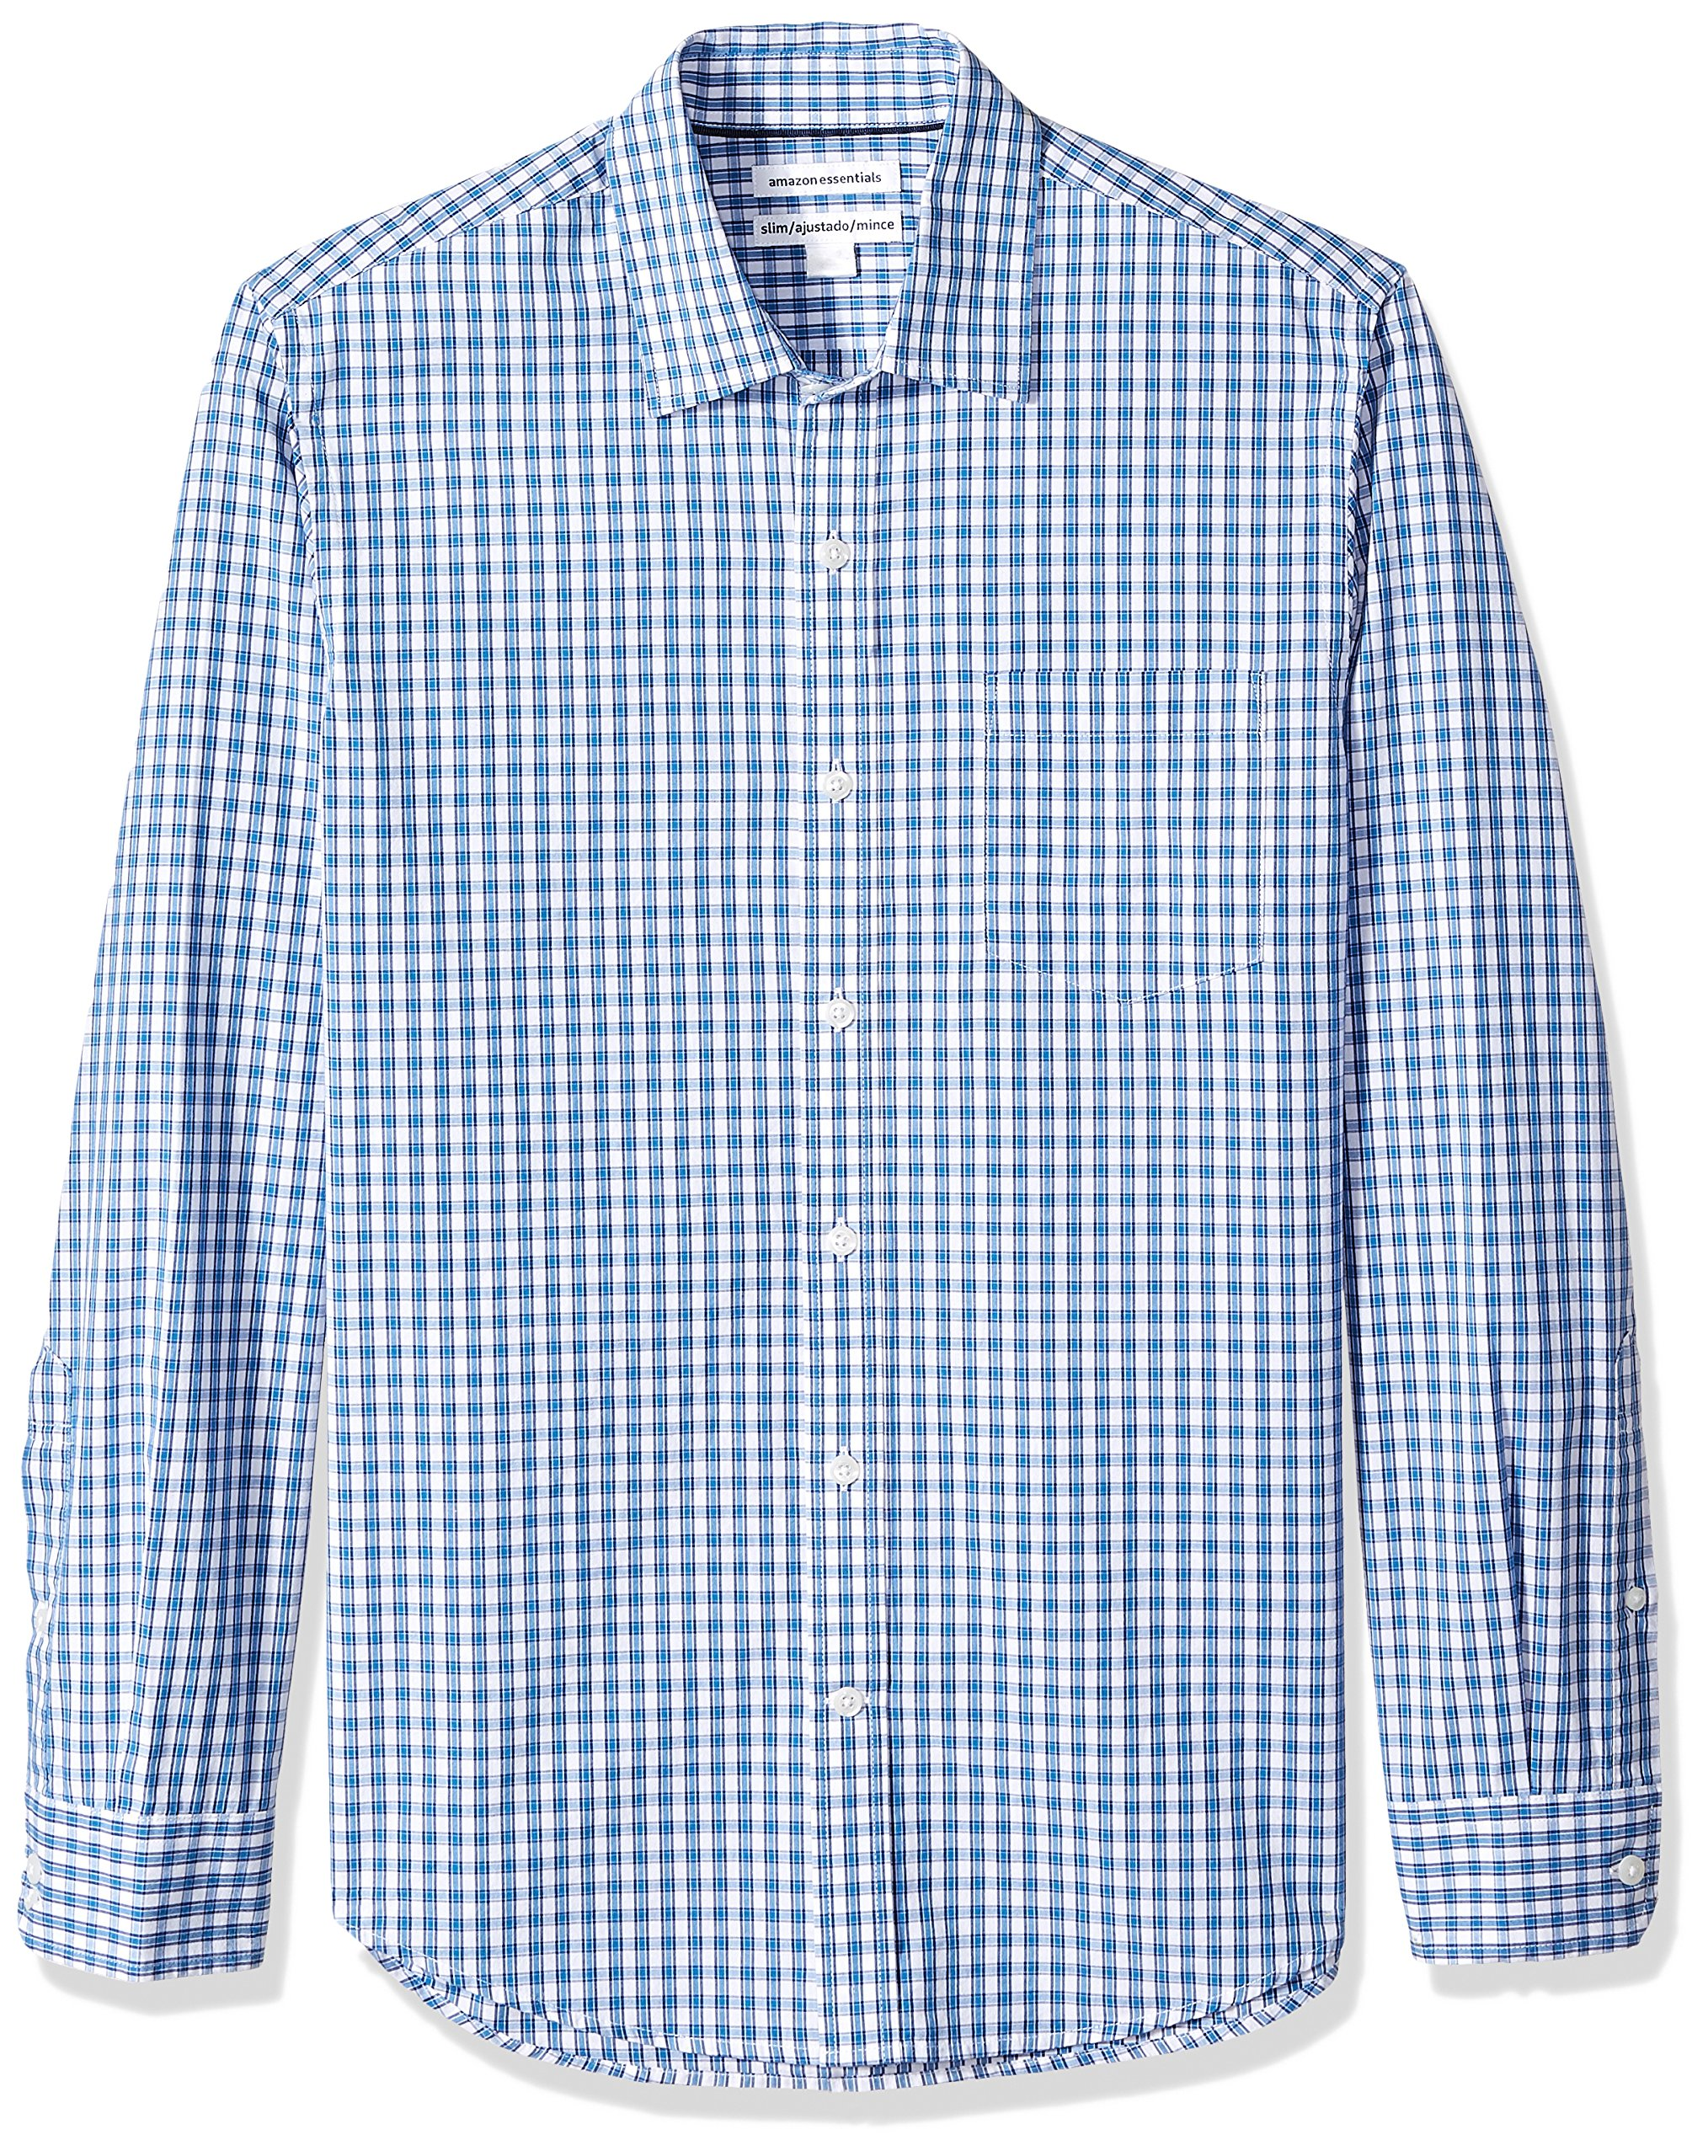 Amazon Essentials Men's Slim-Fit Long-Sleeve Check Shirt, Blue Check, Large